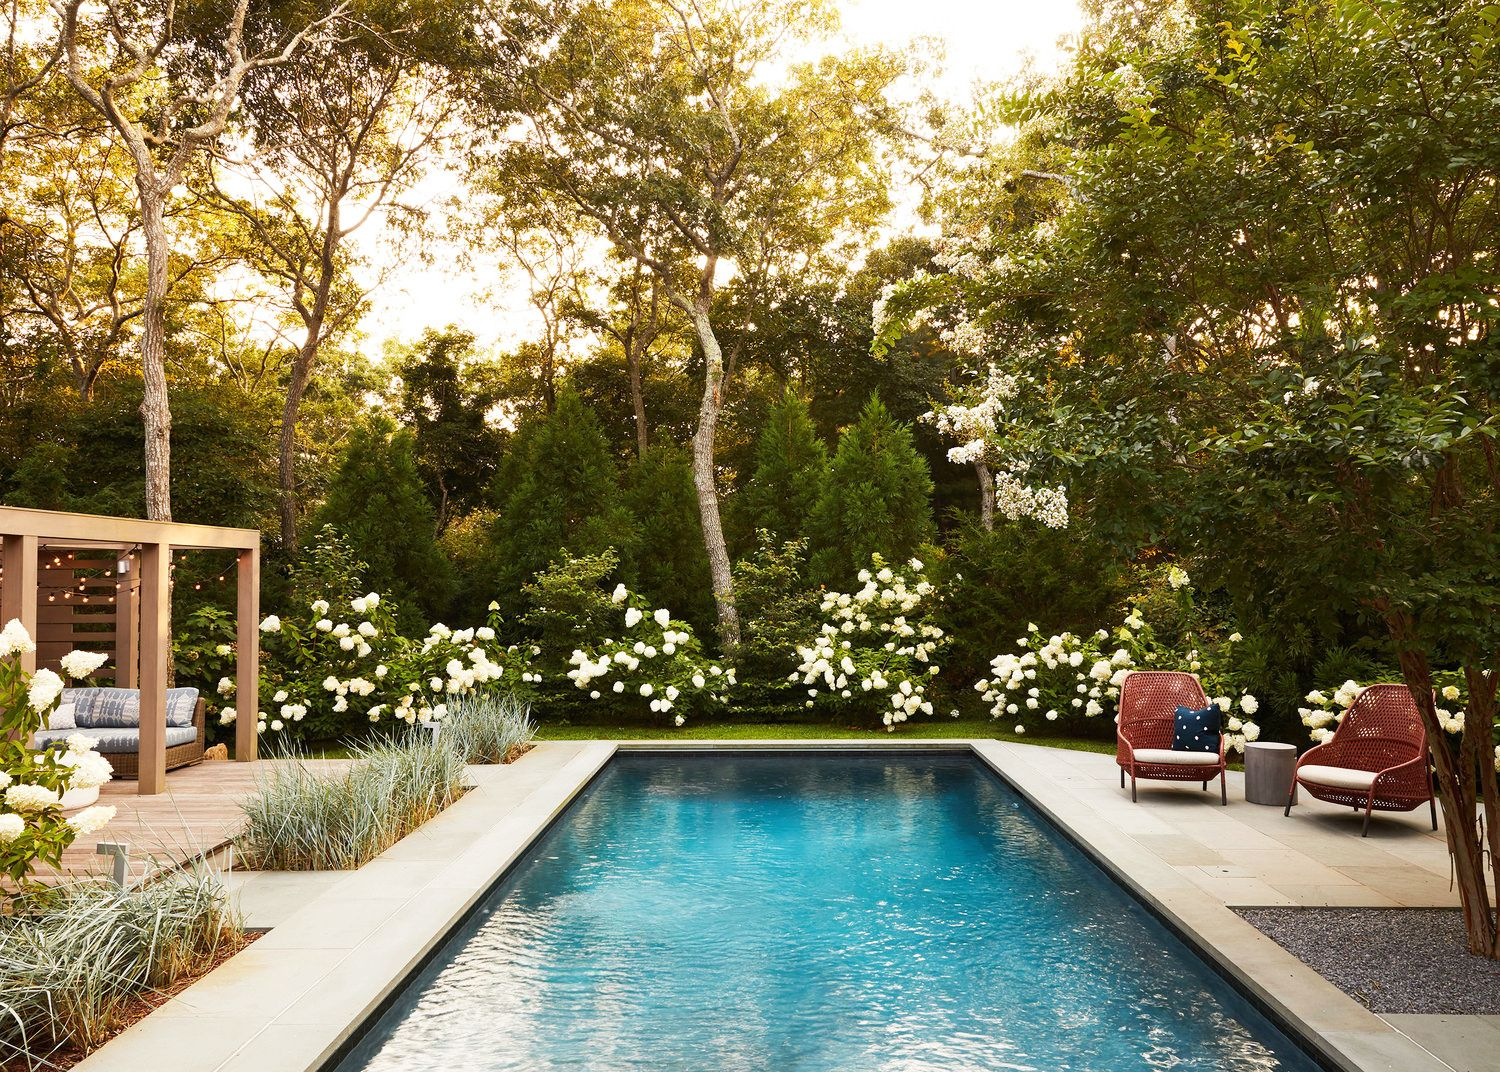 37 Breathtaking Backyard Ideas Outdoor Space Design Inspiration with Landscaping Your Backyard